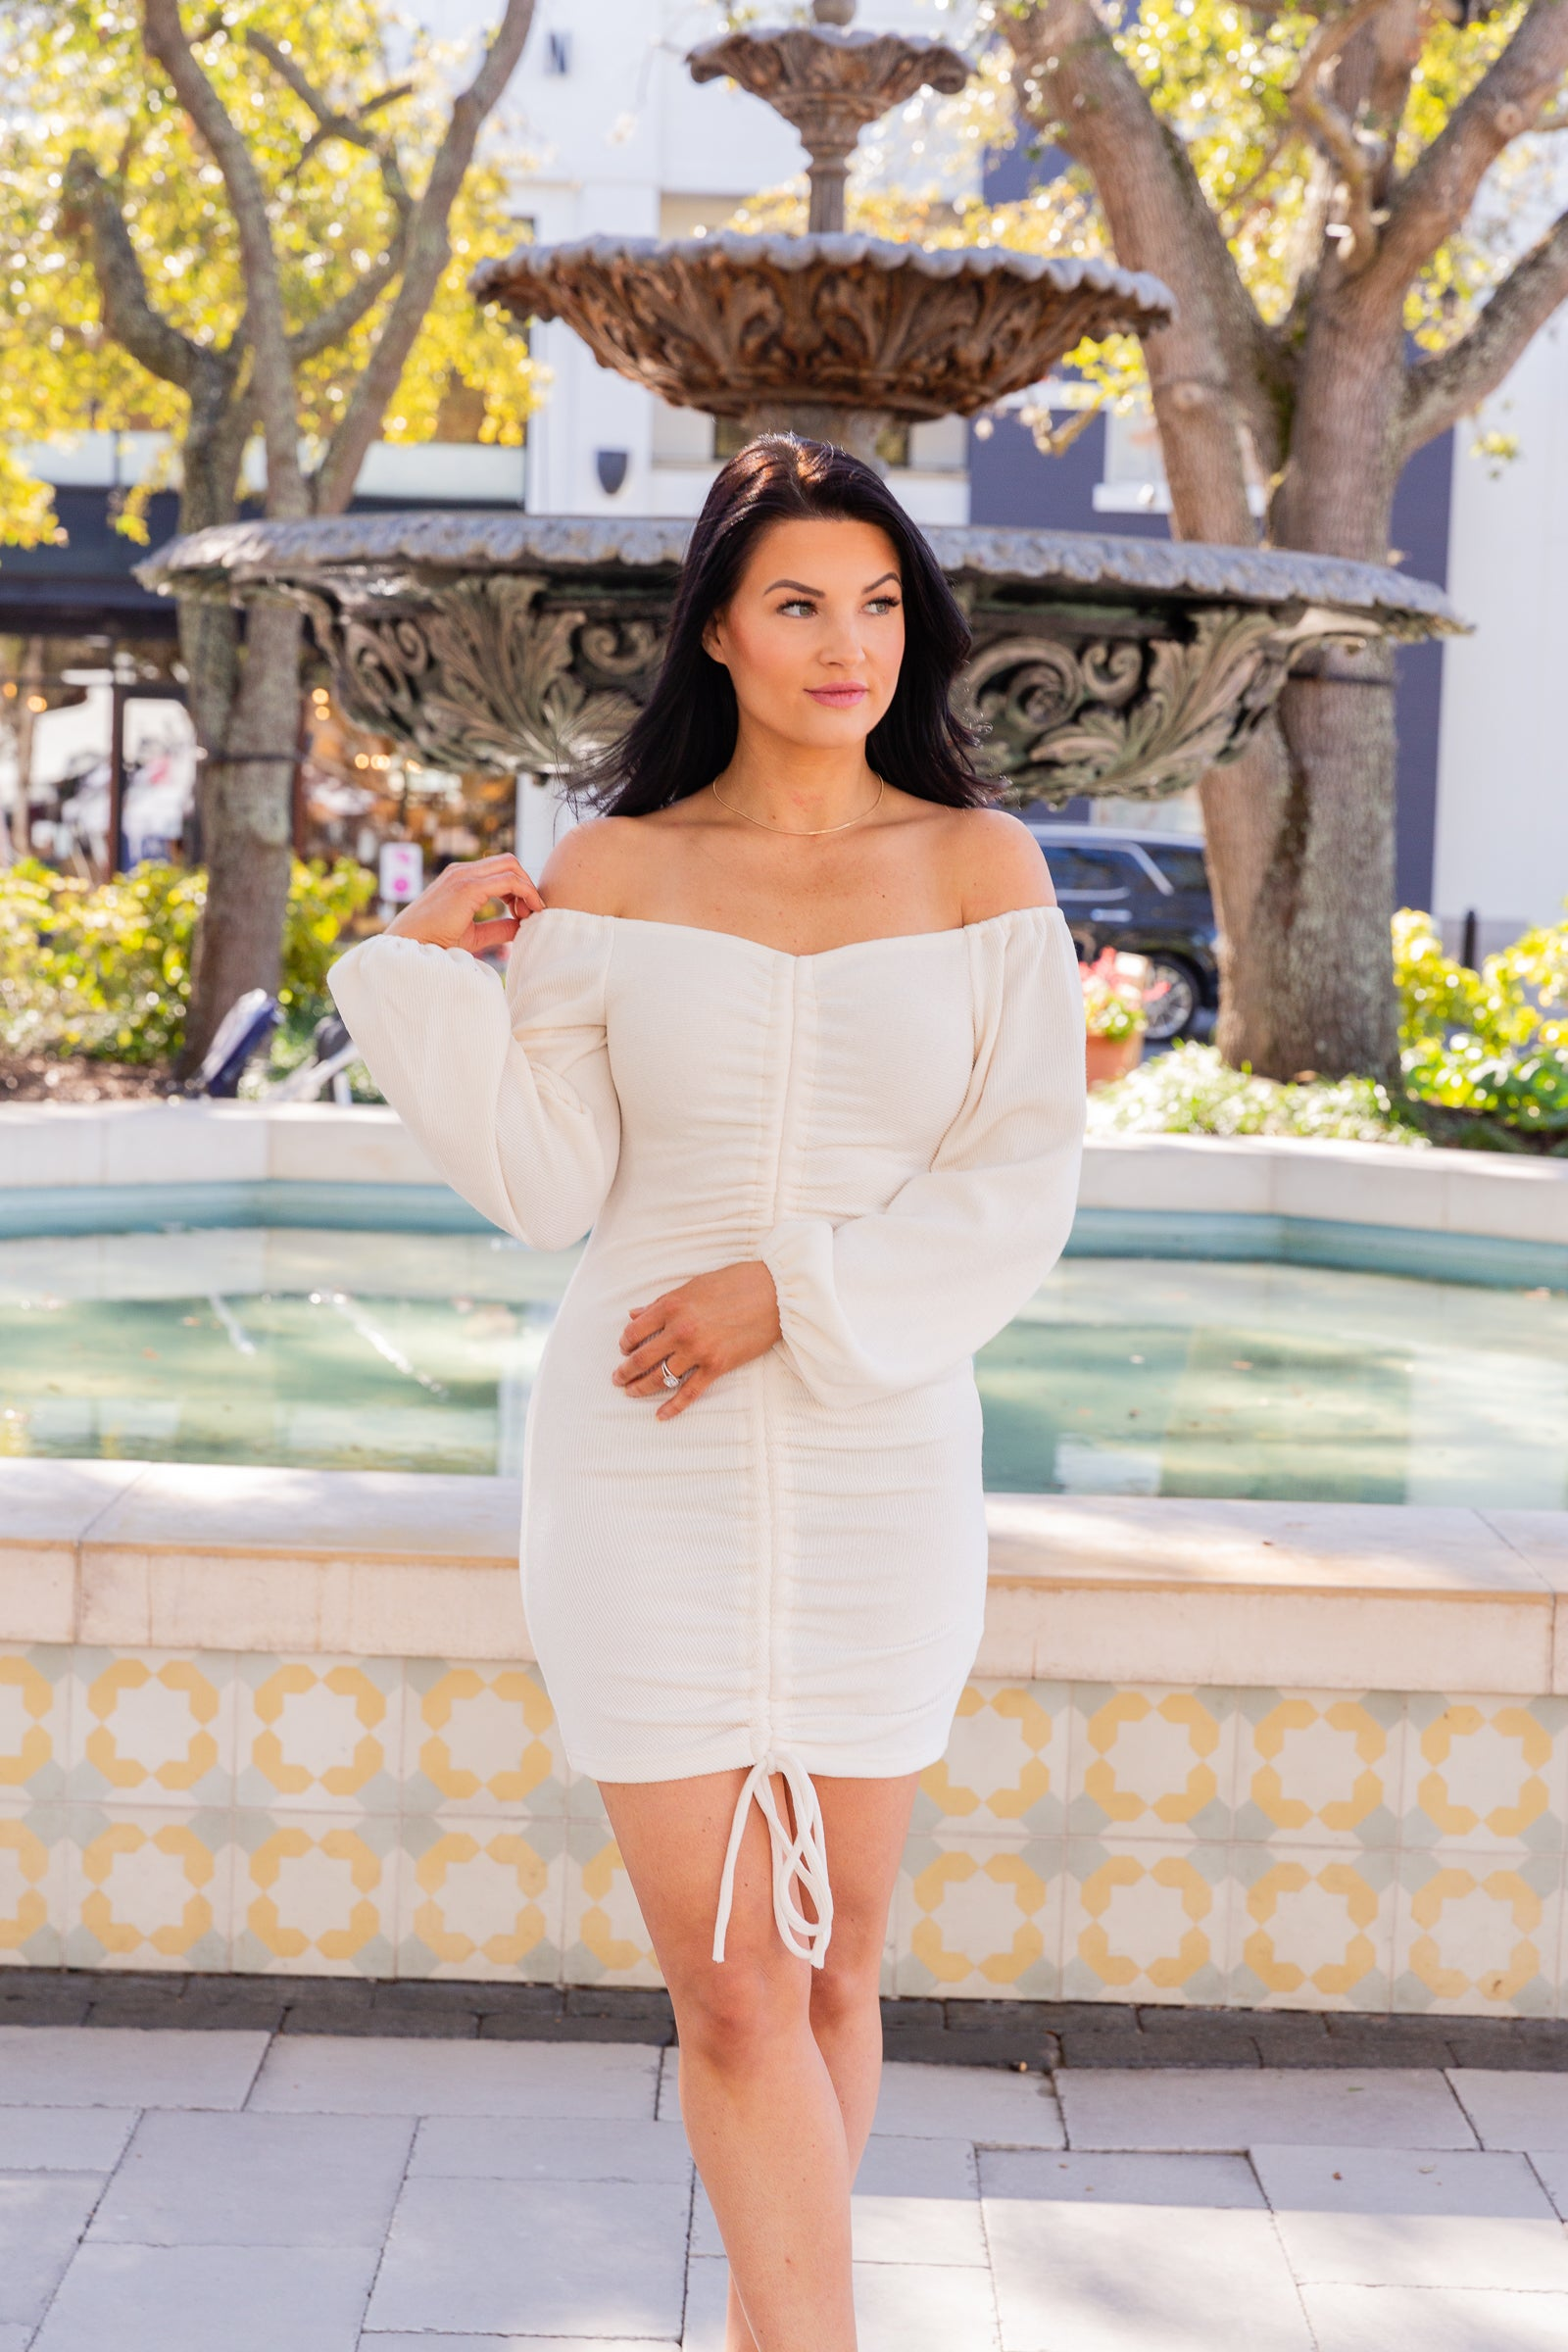 Long elastic cuffed and puffed sleeves attach to an off-the-shoulder sweetheart neckline going into a bodycon bodice silhouette with a drawstring center that ruches the dress and ties at the bottom.